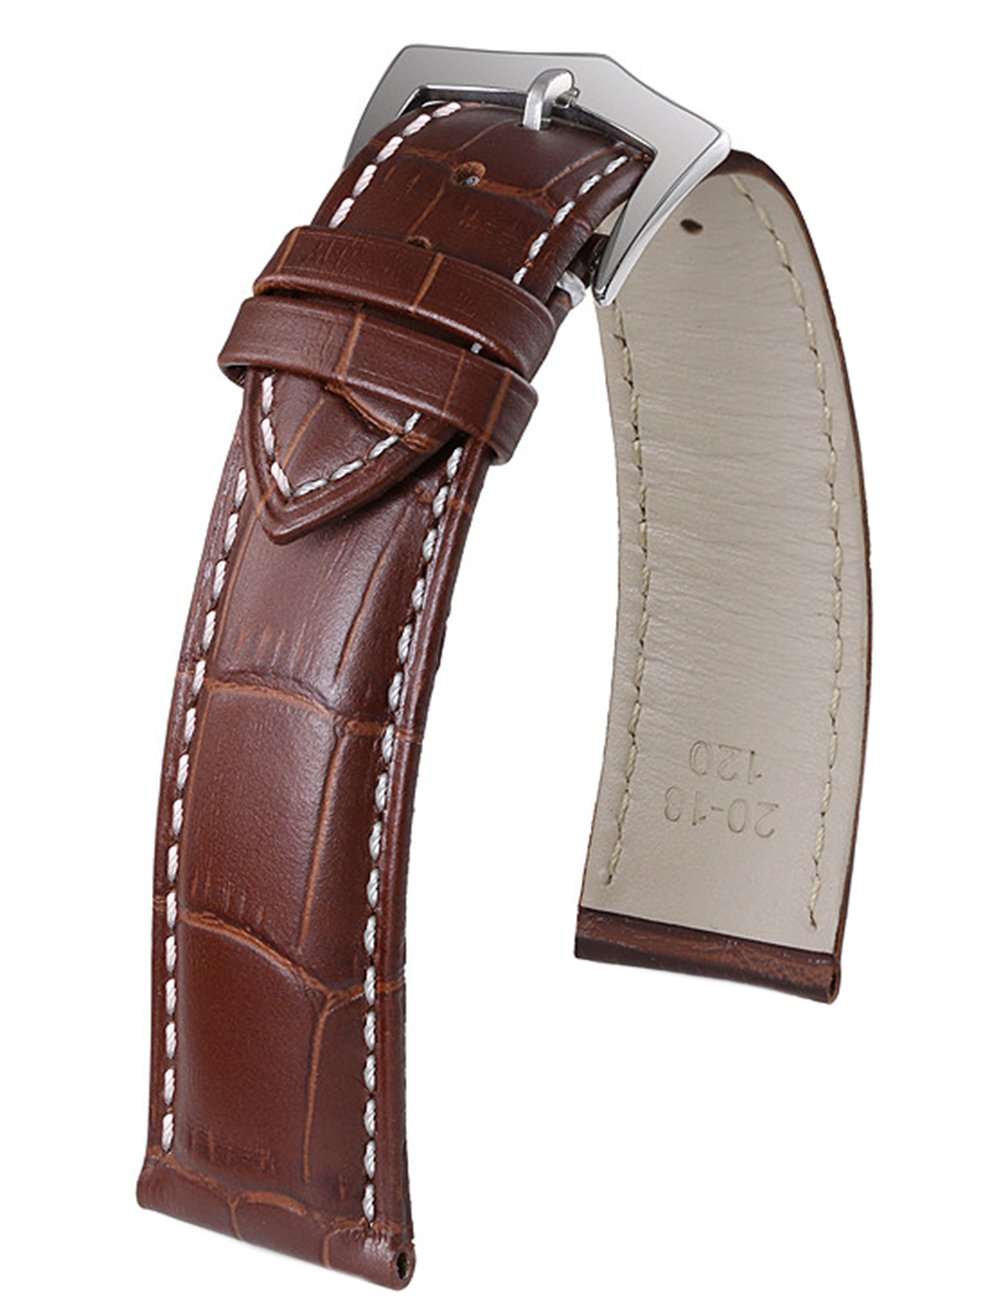 15mm Top-Class Brown Strap for Watches in Leather White Contrasting Seam Alligator Grain Pin Clasp Moderate Padding